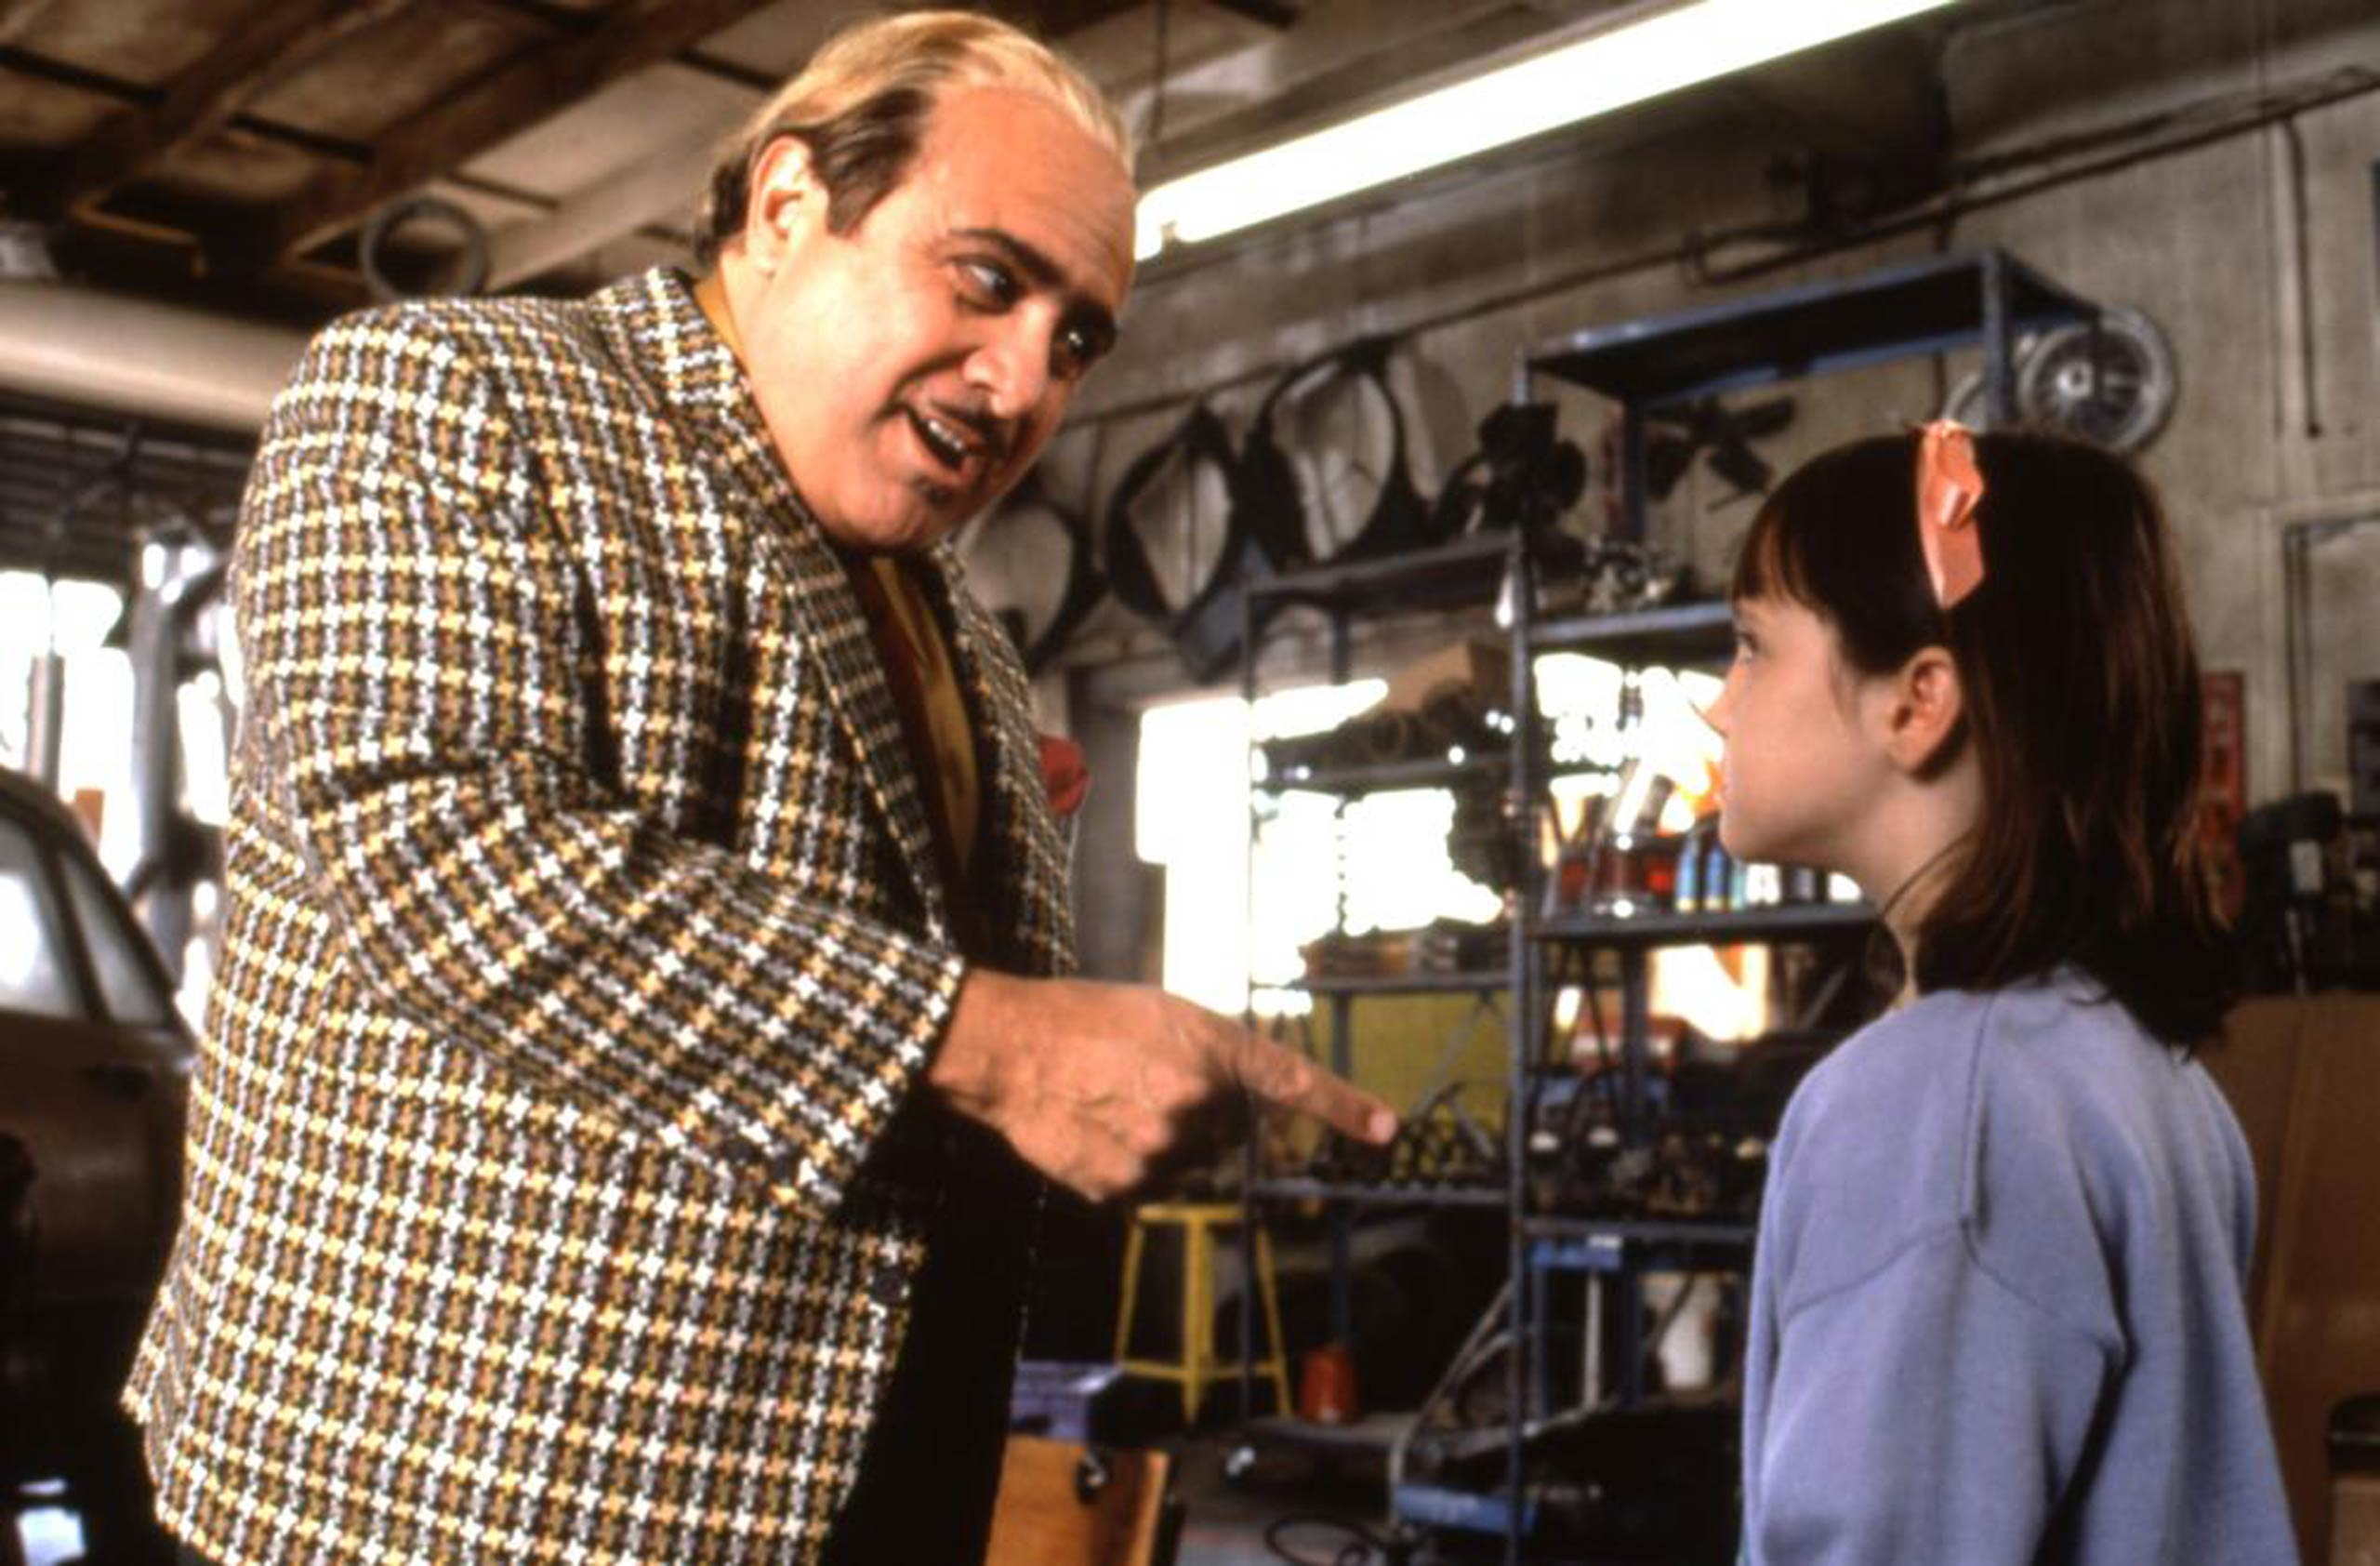 DeVito did double-duty on Matilda (1996), both playing the father of the titular character and handling directing duties.